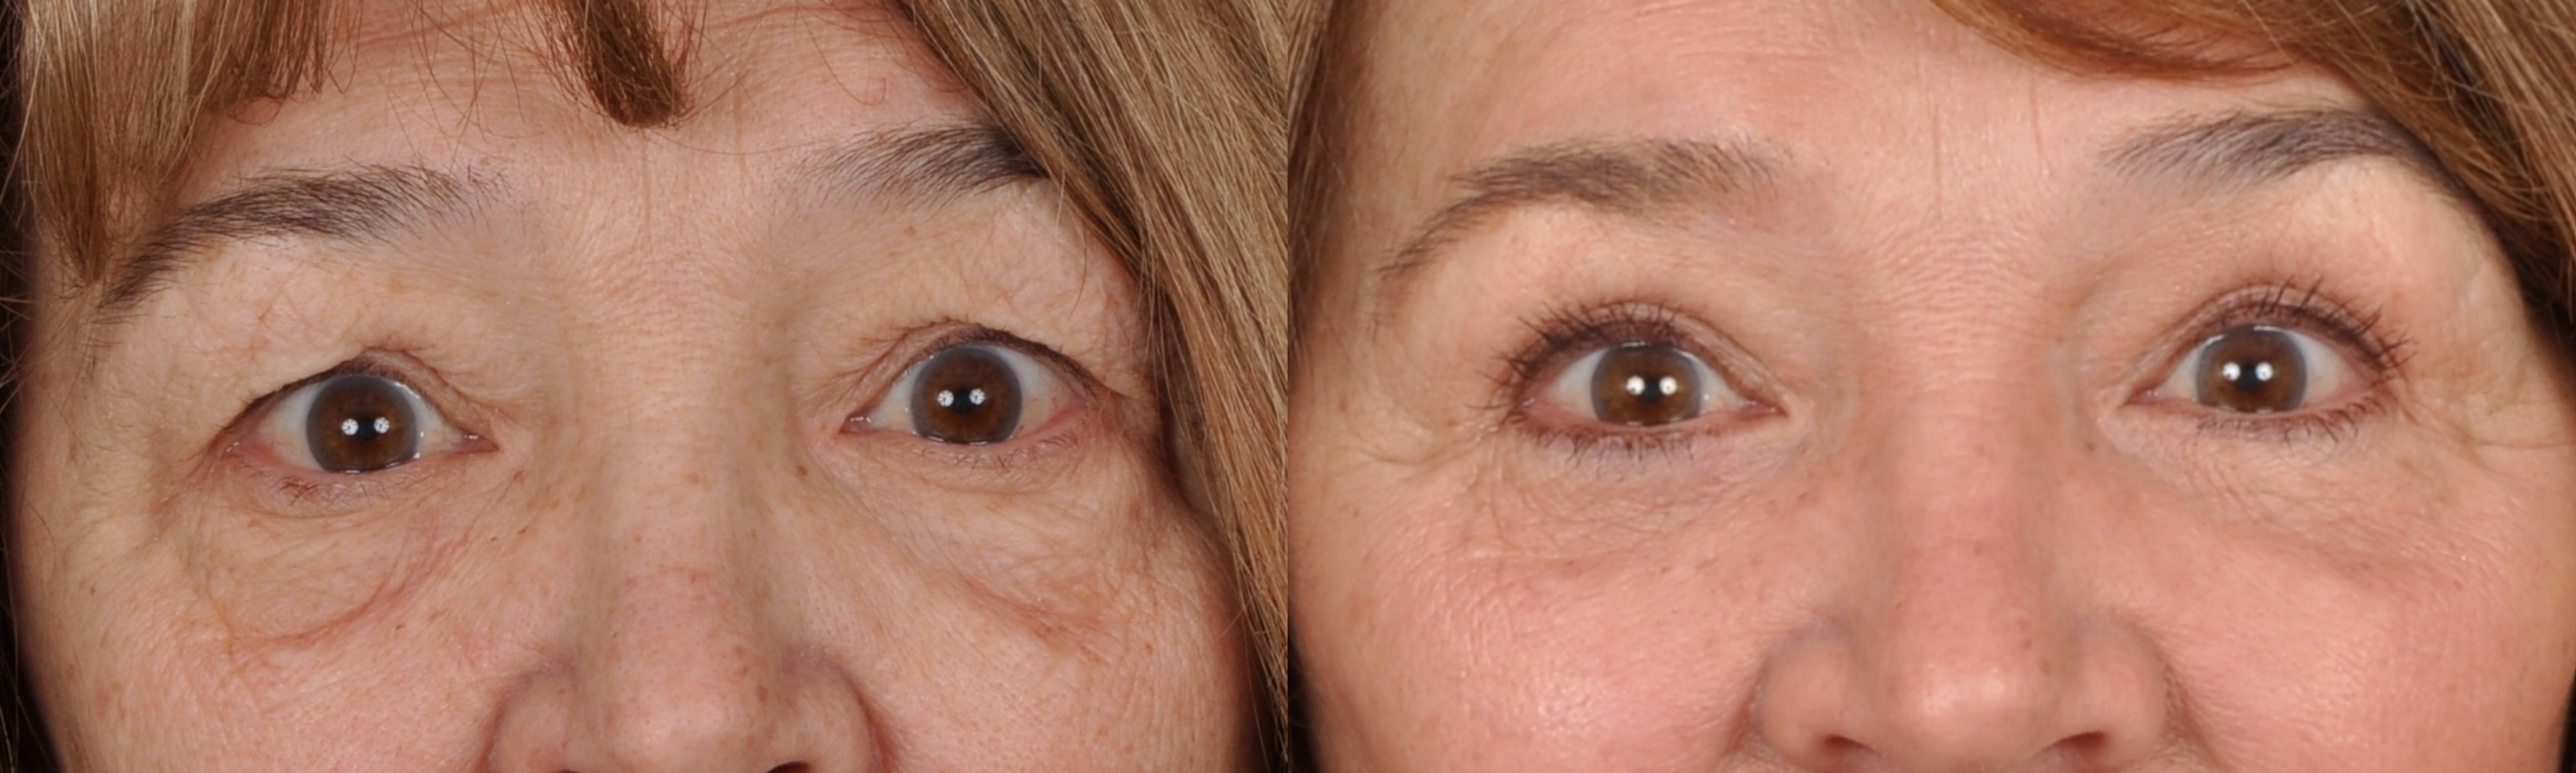 Photo Gallery Blepharoplasty Edmon P Khoury Md